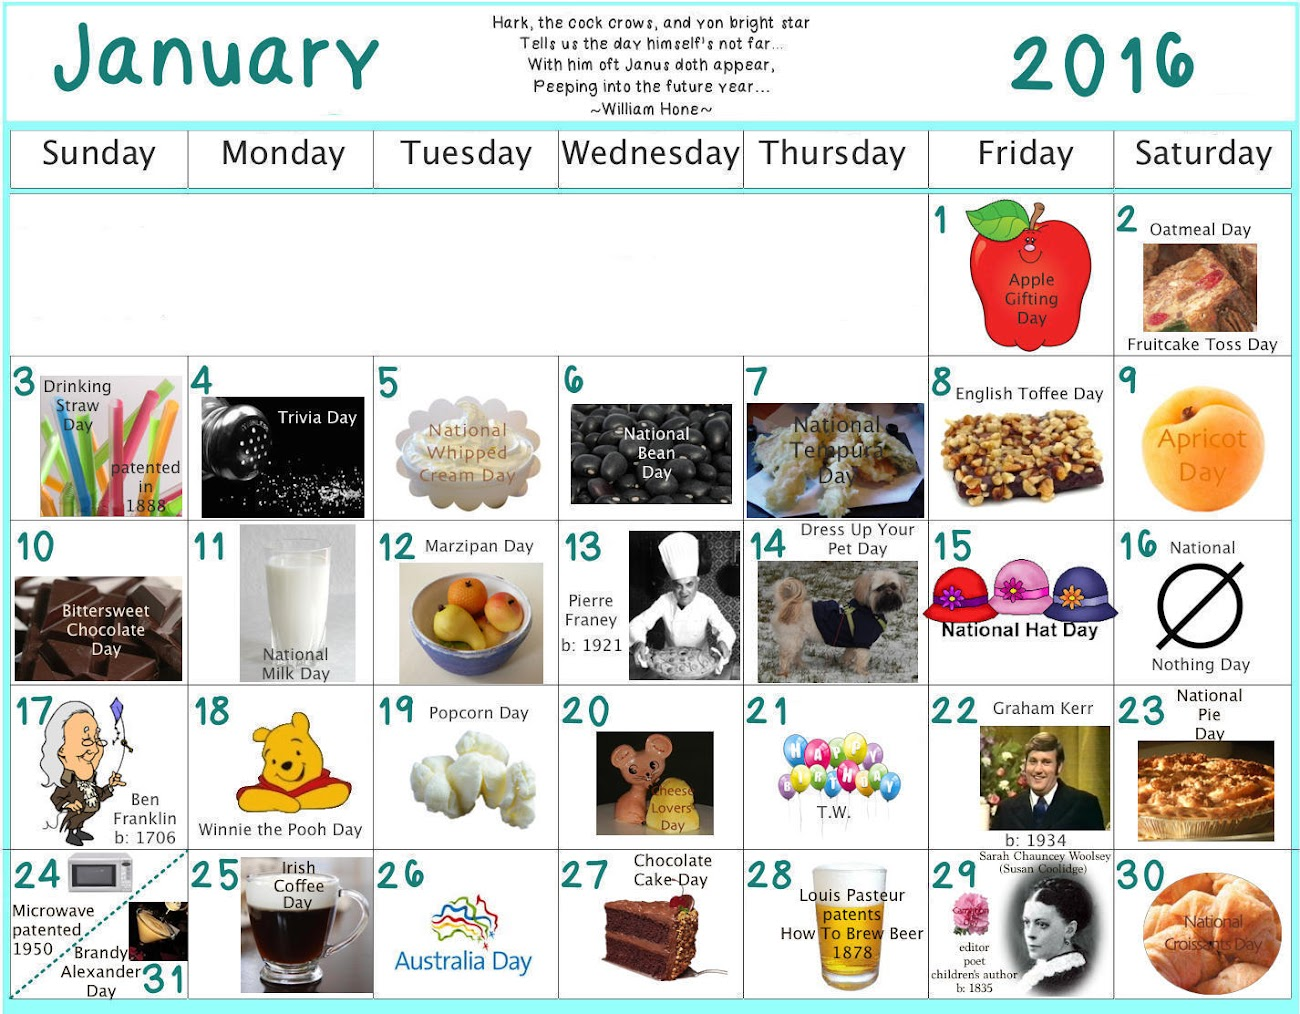 January 2016 Edible Celebrations Calendar